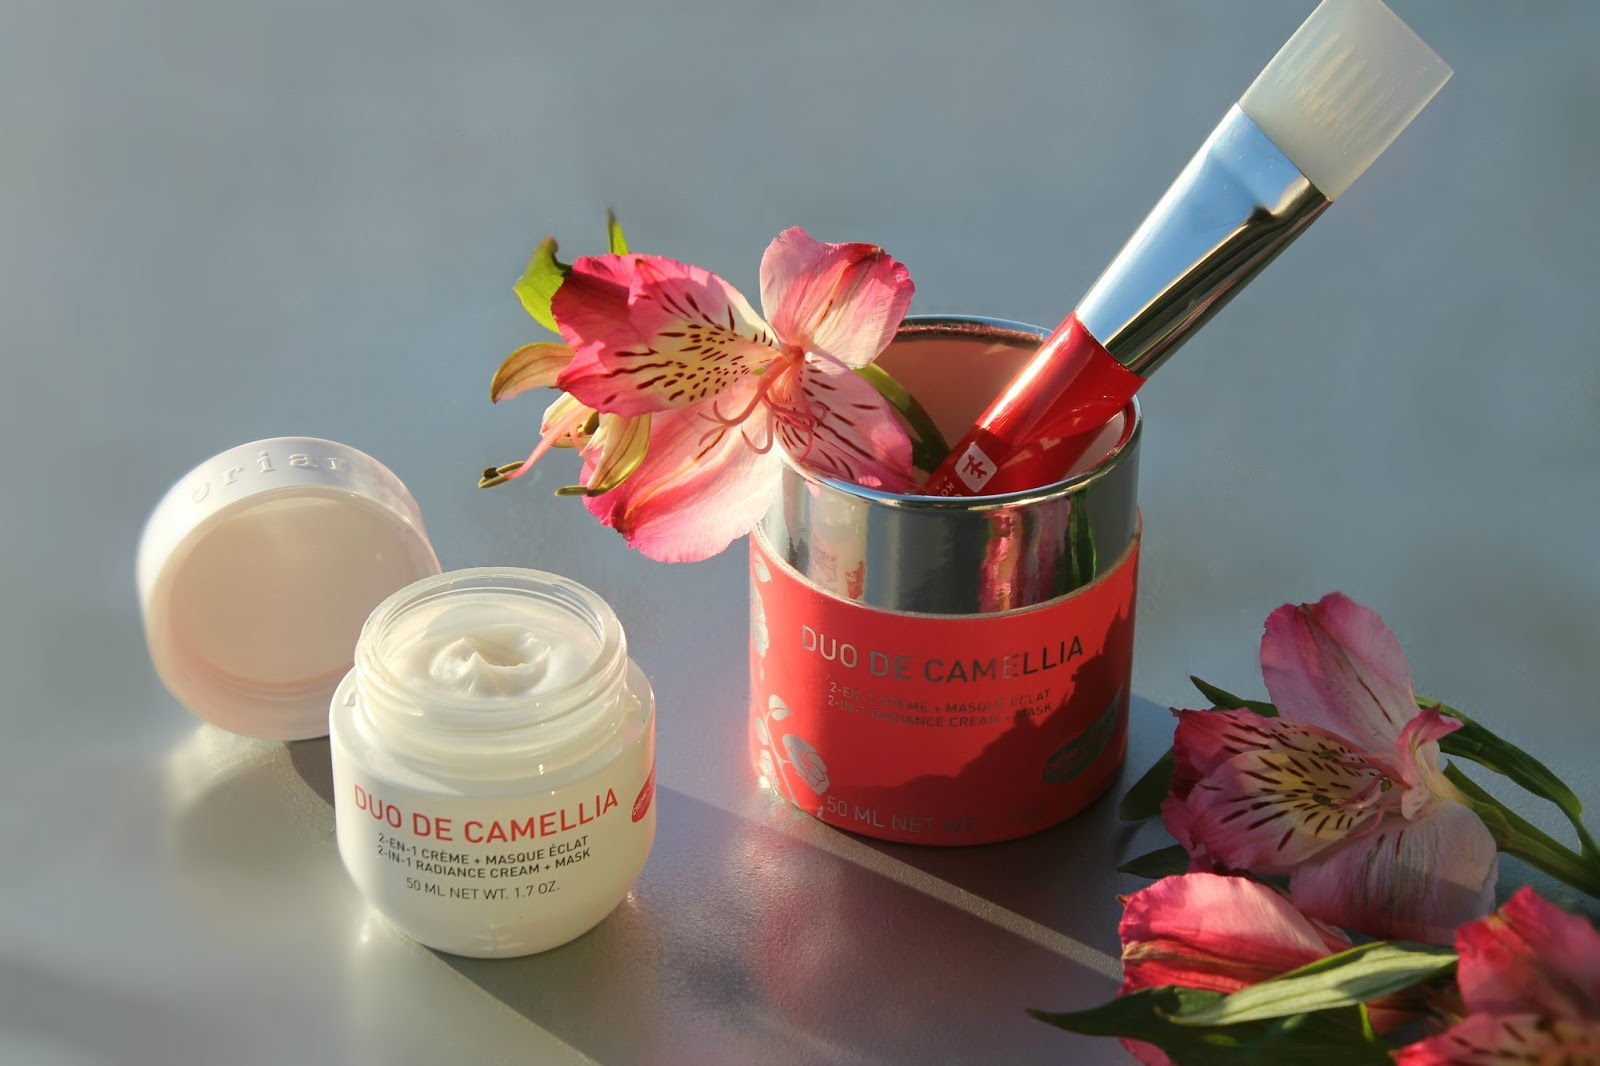 Camellia weight loss trial